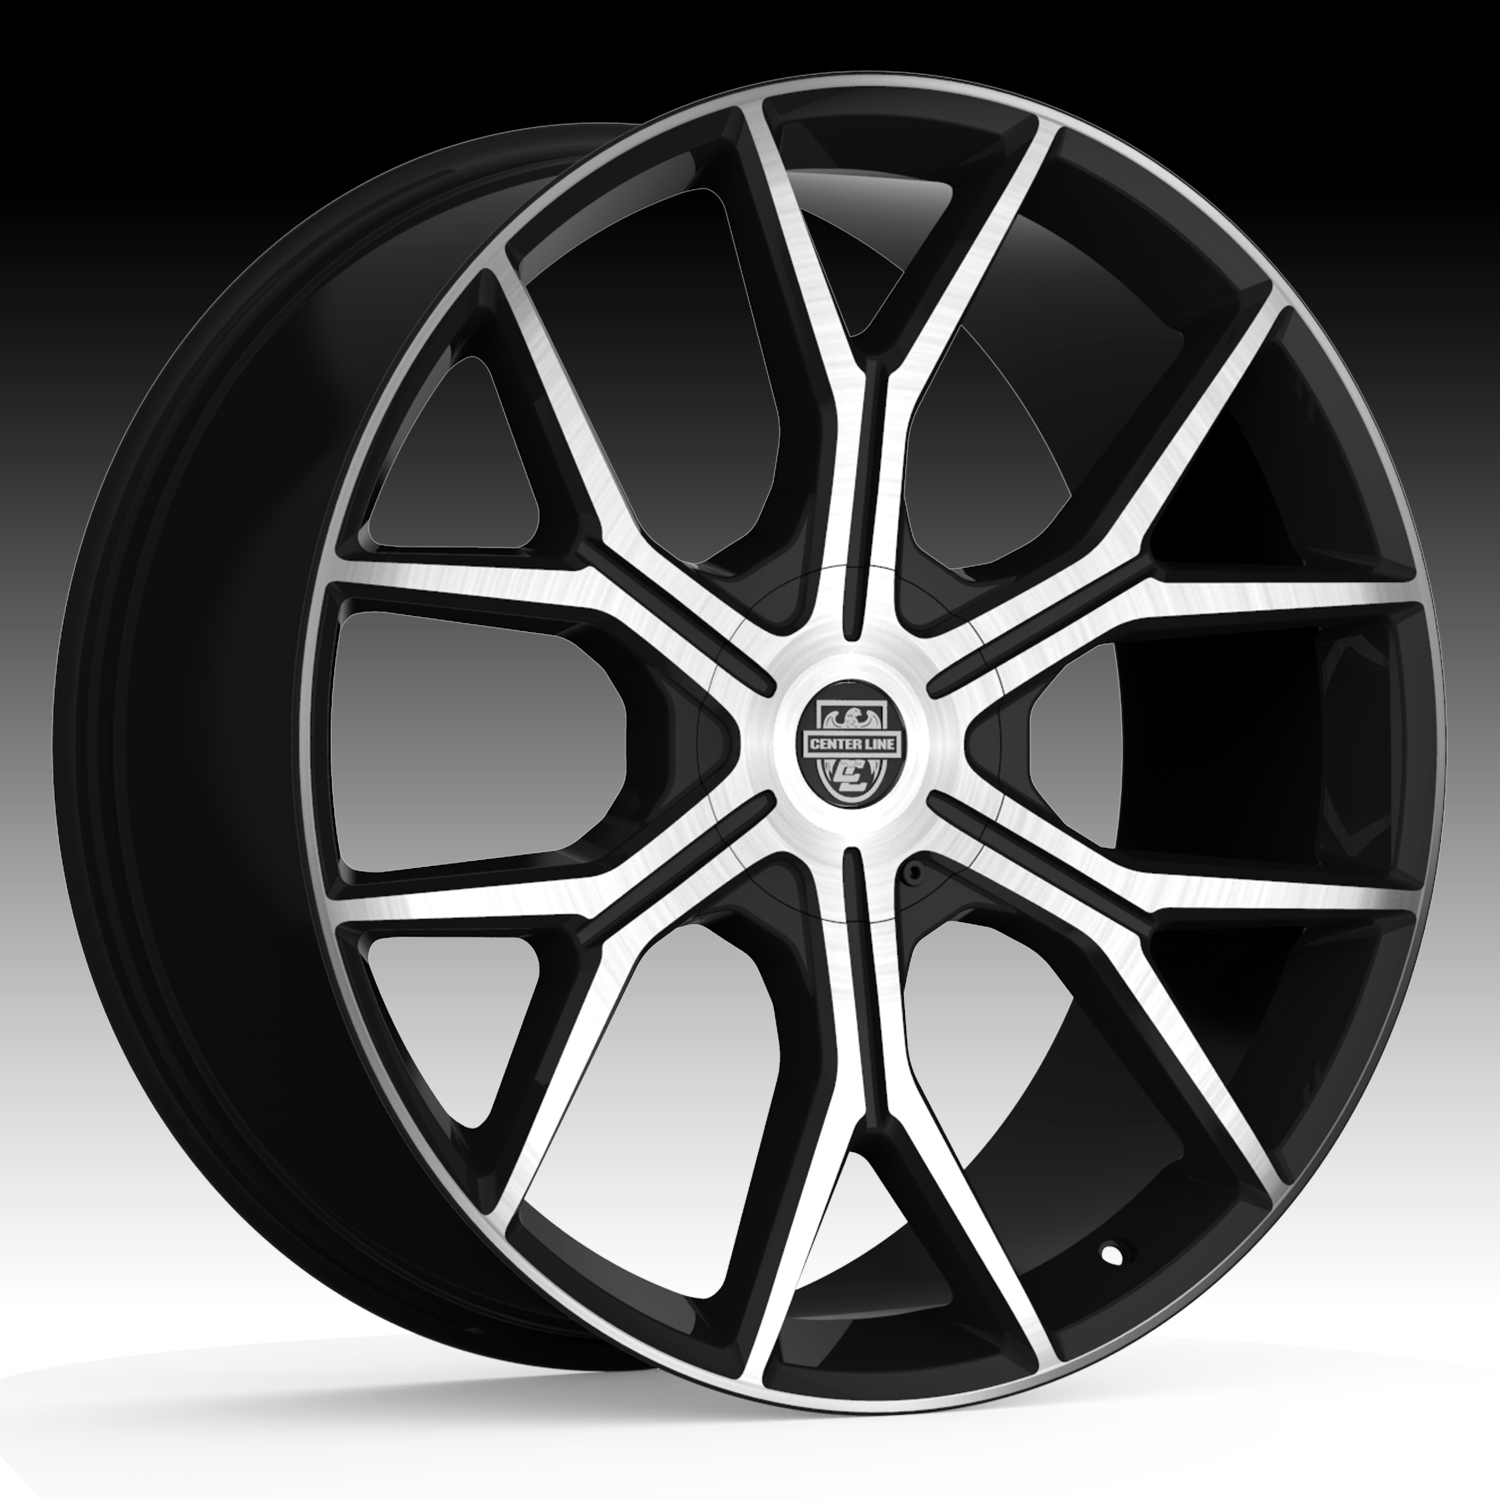 Centerline 840MB Slingshot Machined Black 24x10 6x135 / 6x5.5 30mm (840MB-2416830)